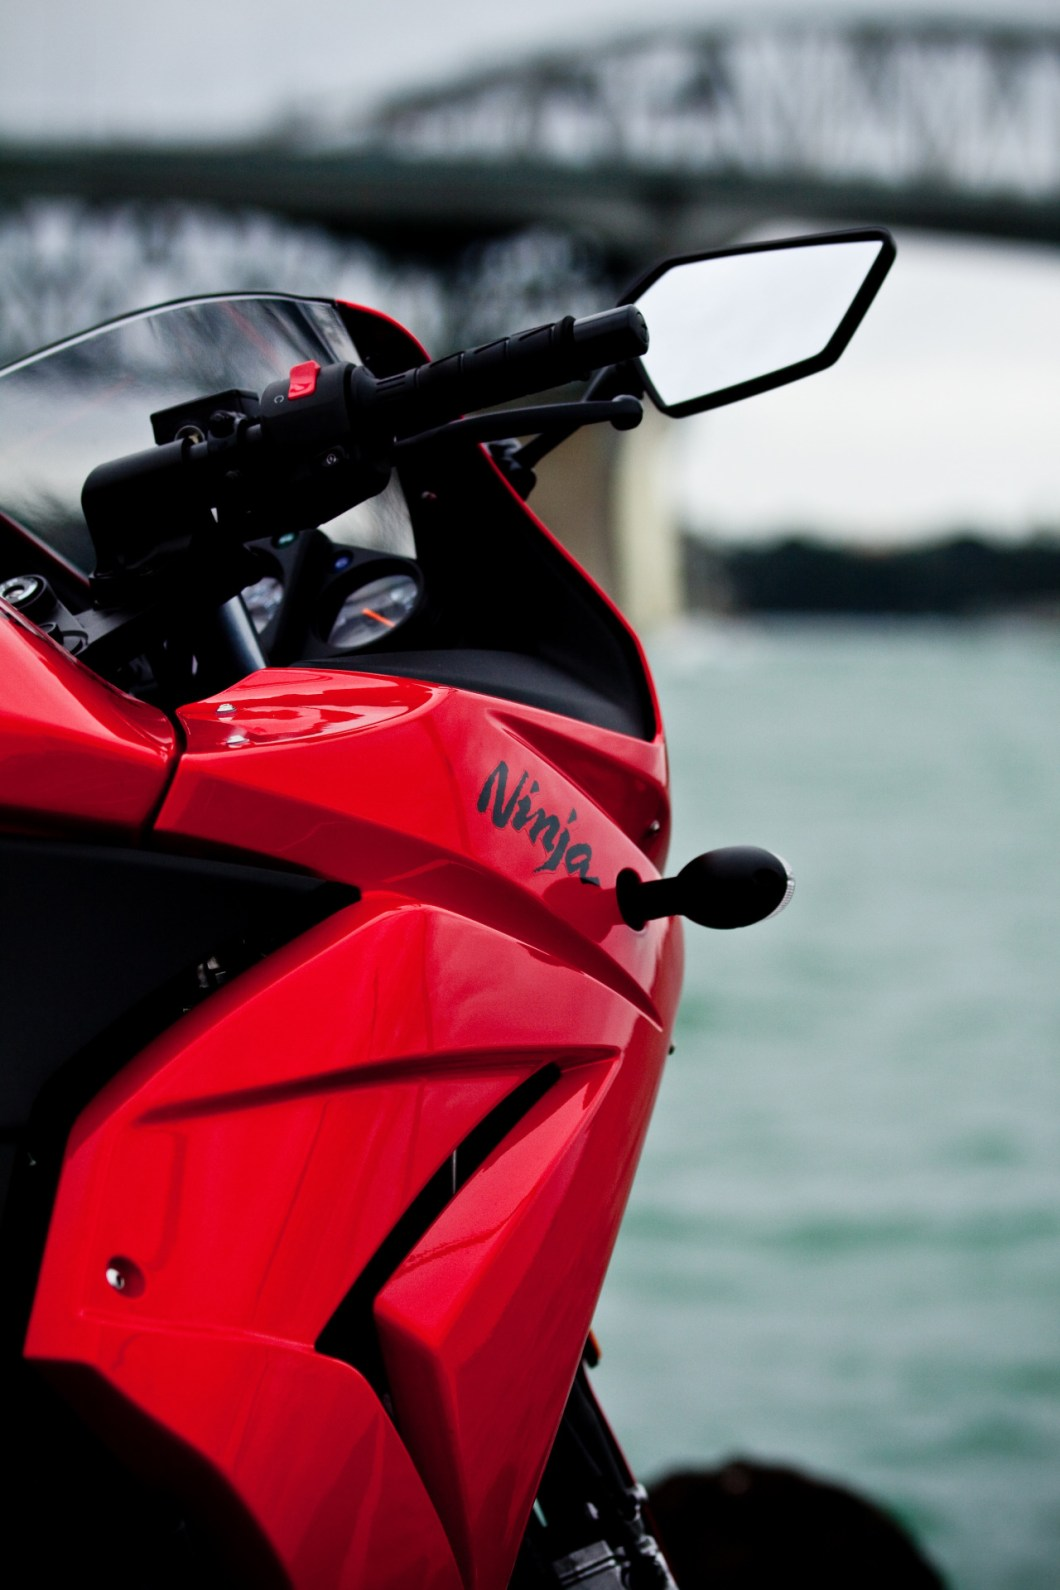 Sports Bike Hd Wallpaper For Mobile